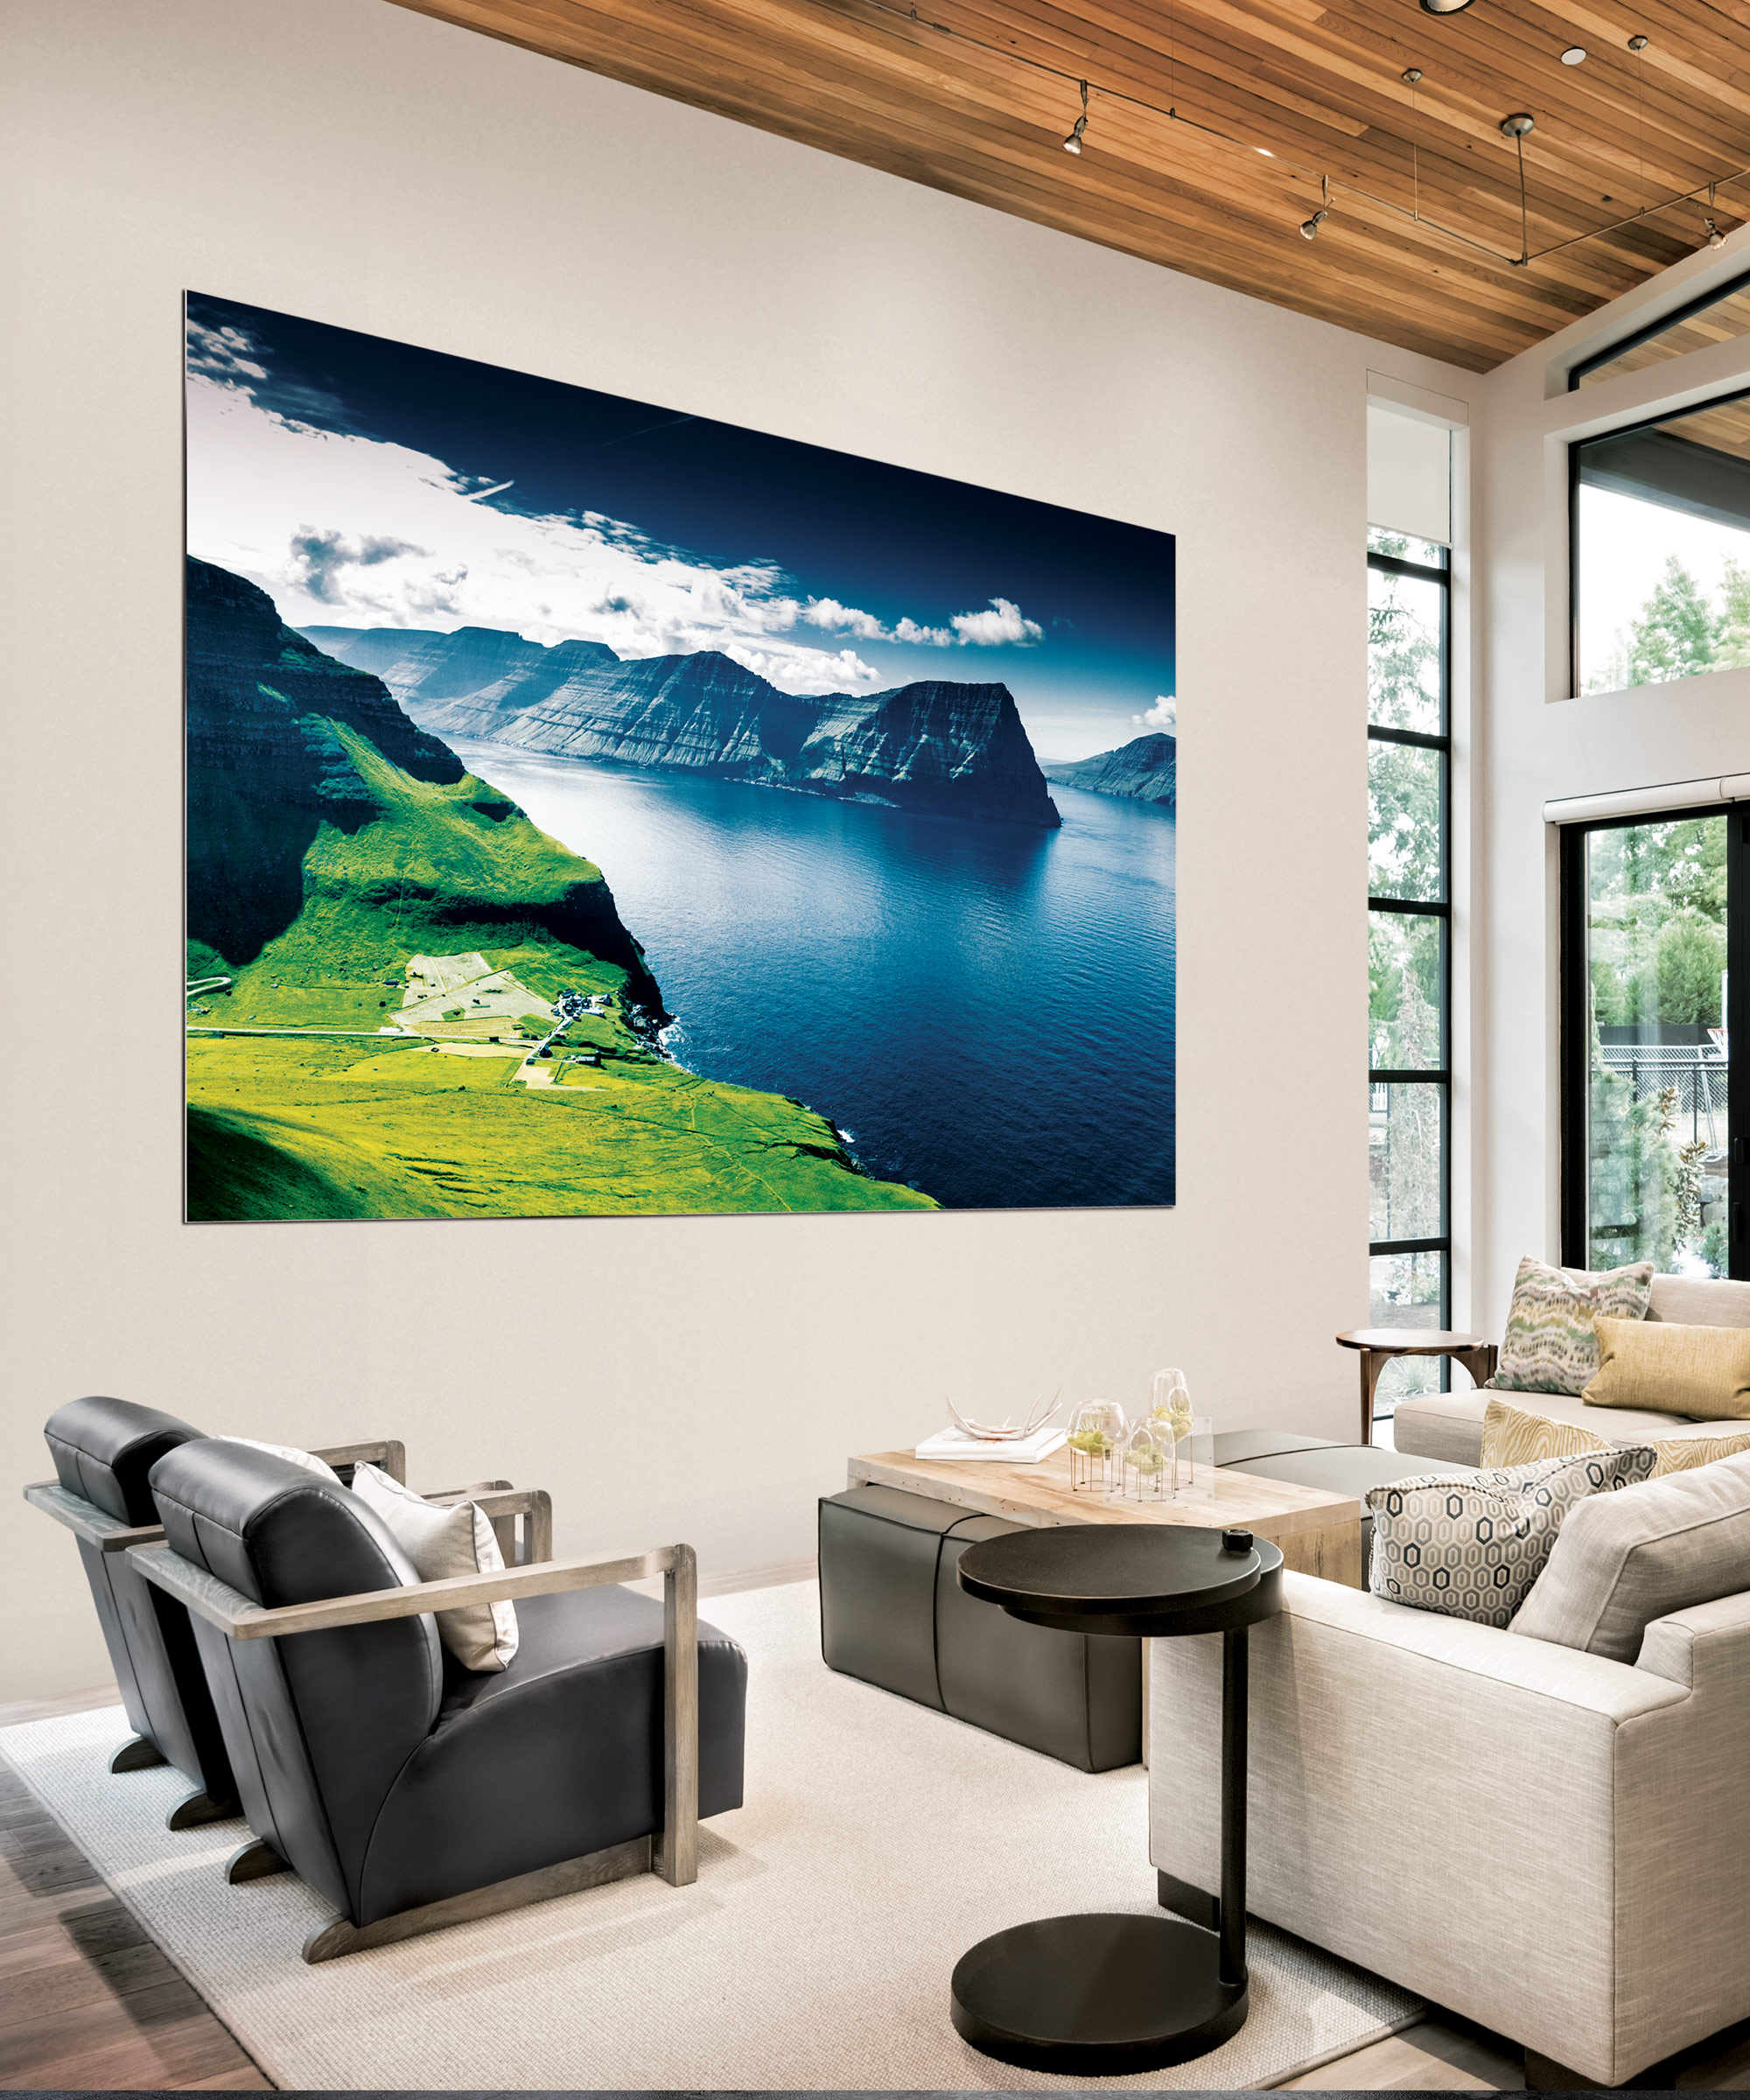 The Wall by Samsung in a residential sitting room